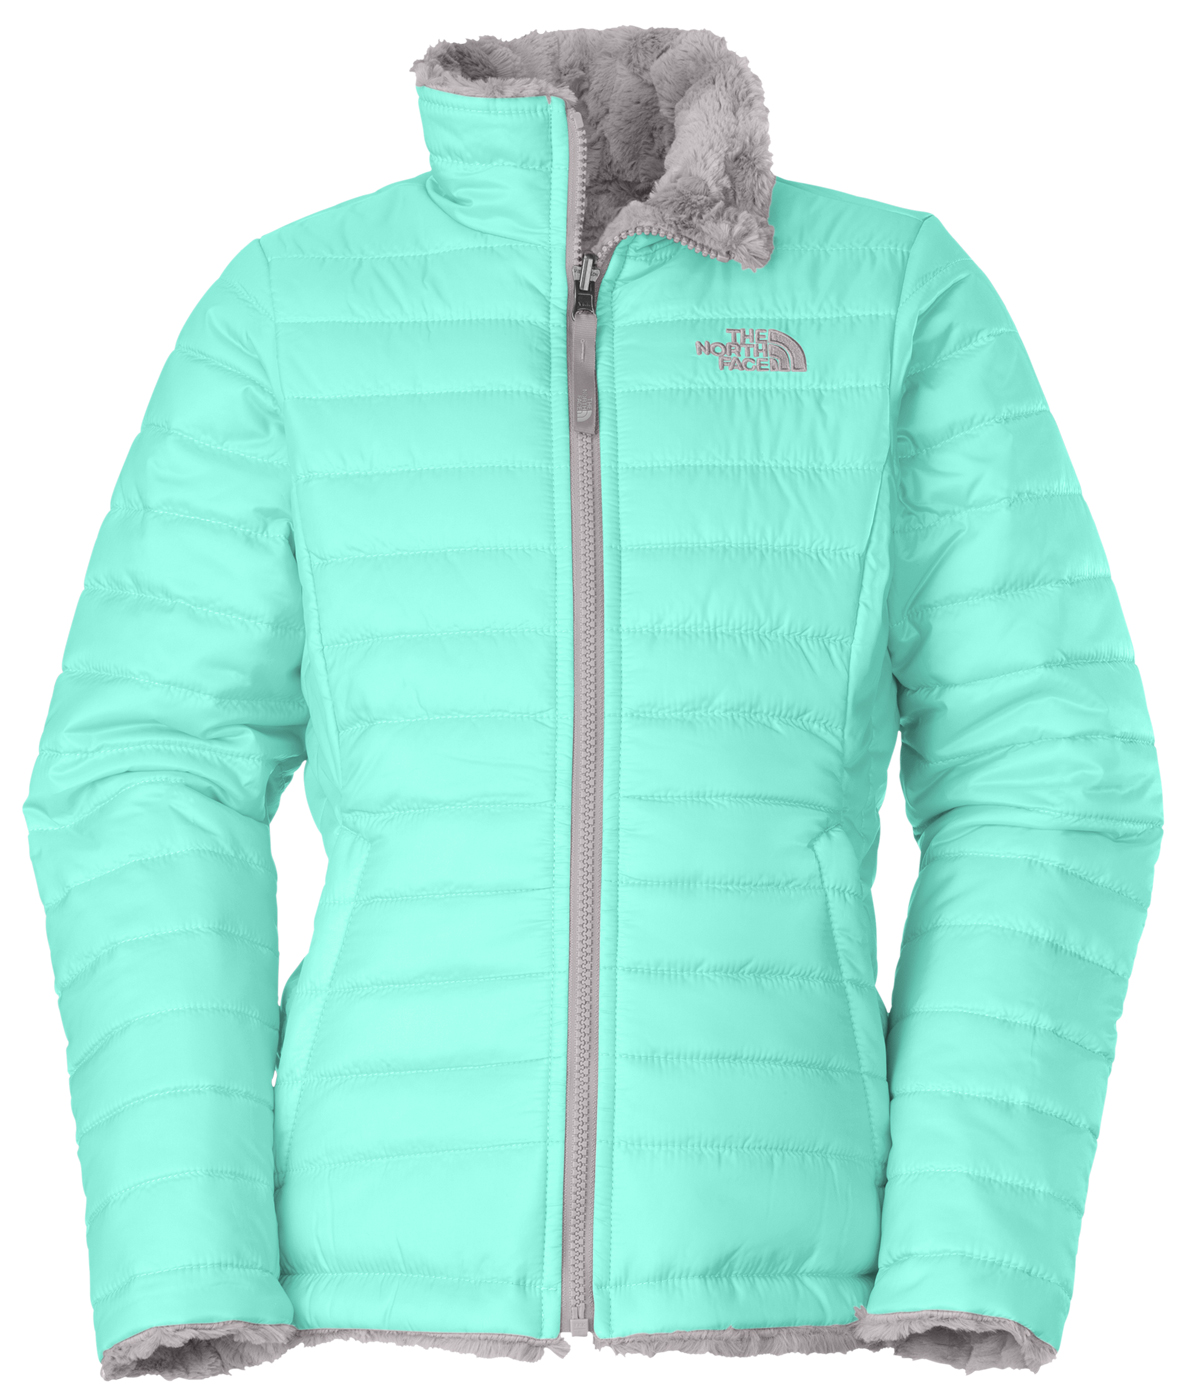 Girls North Face Jackets Jacket North Face